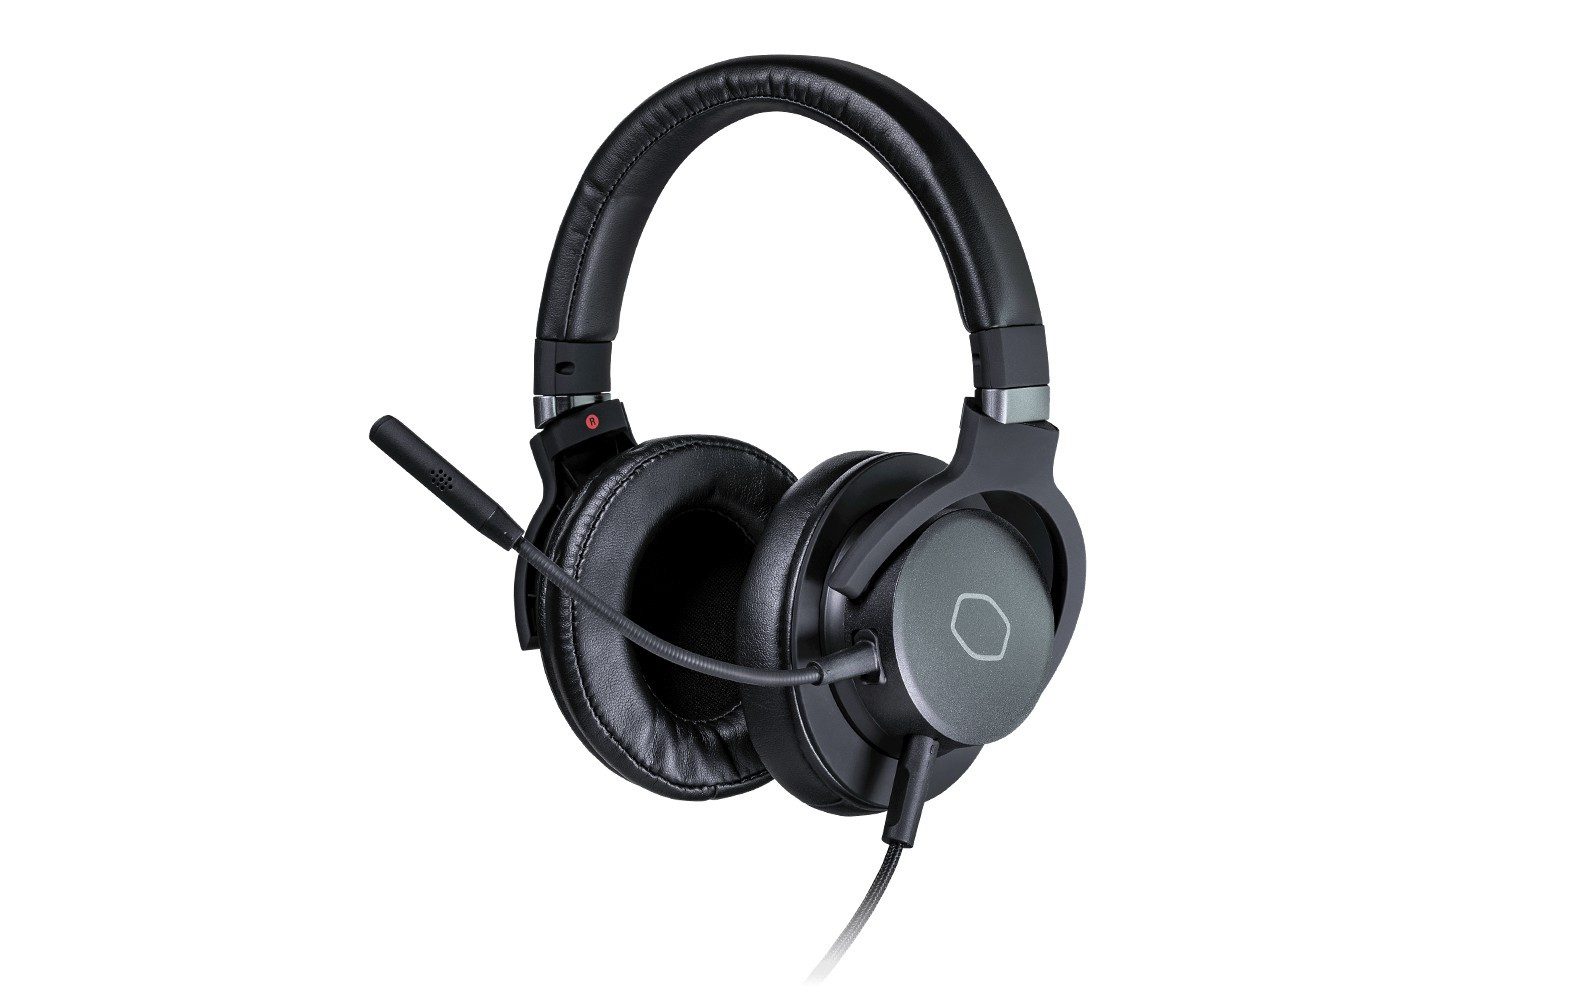 COOLER MASTER MH751 black wired headphones  | 3.5mm